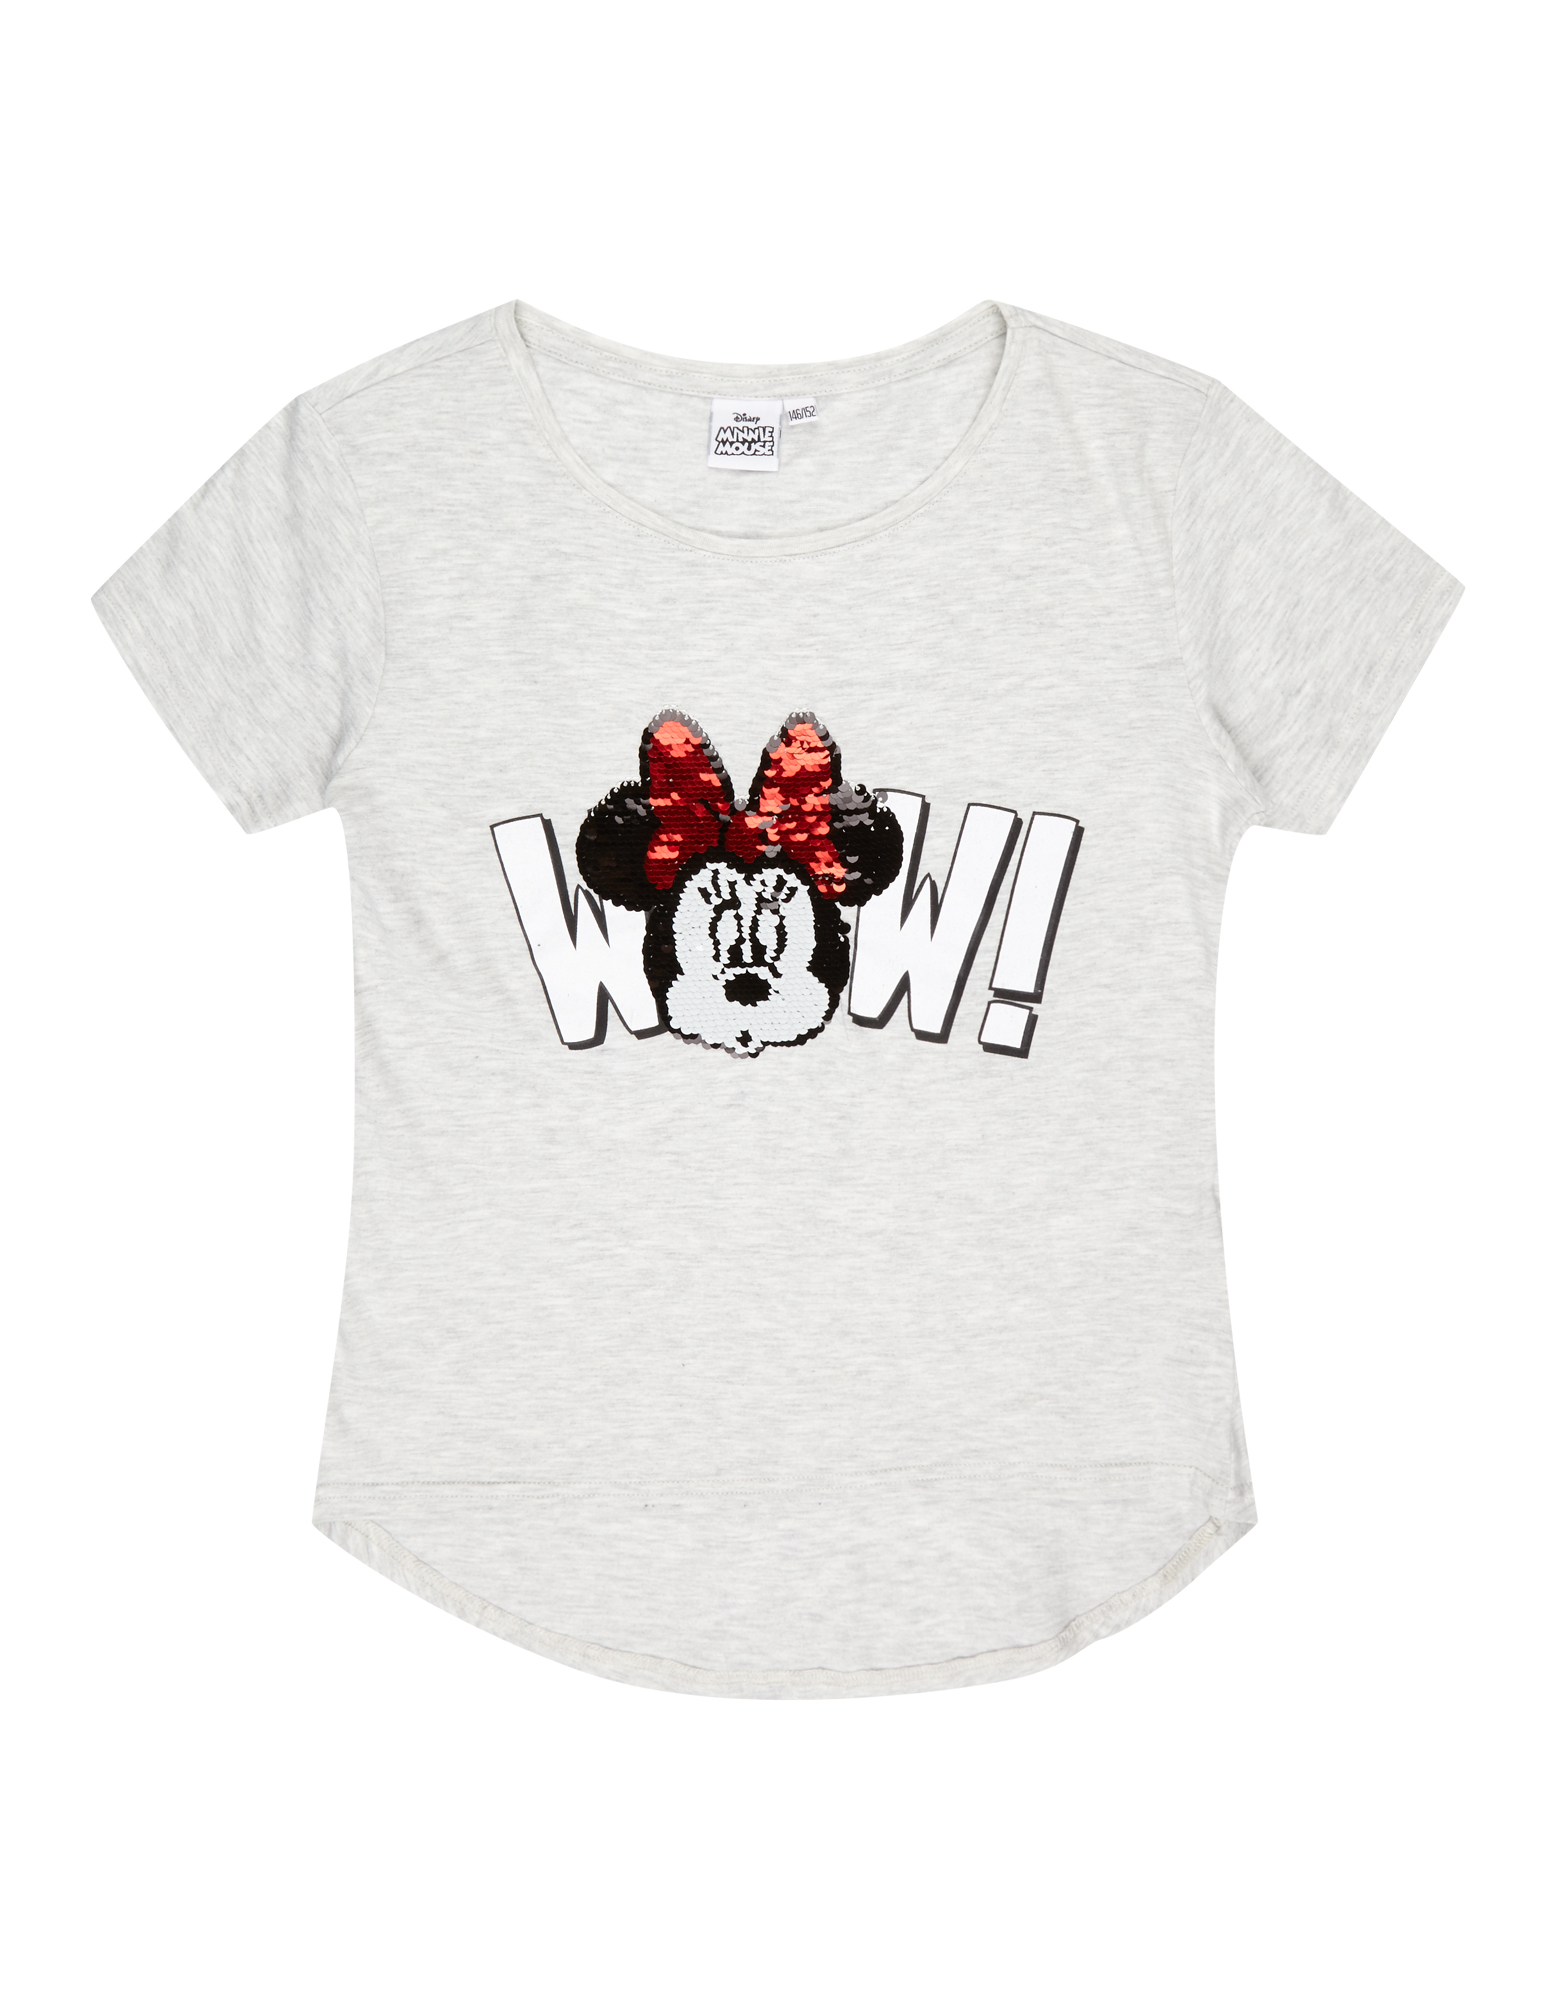 m dchen t shirt minnie mouse mit wende pailletten takko. Black Bedroom Furniture Sets. Home Design Ideas